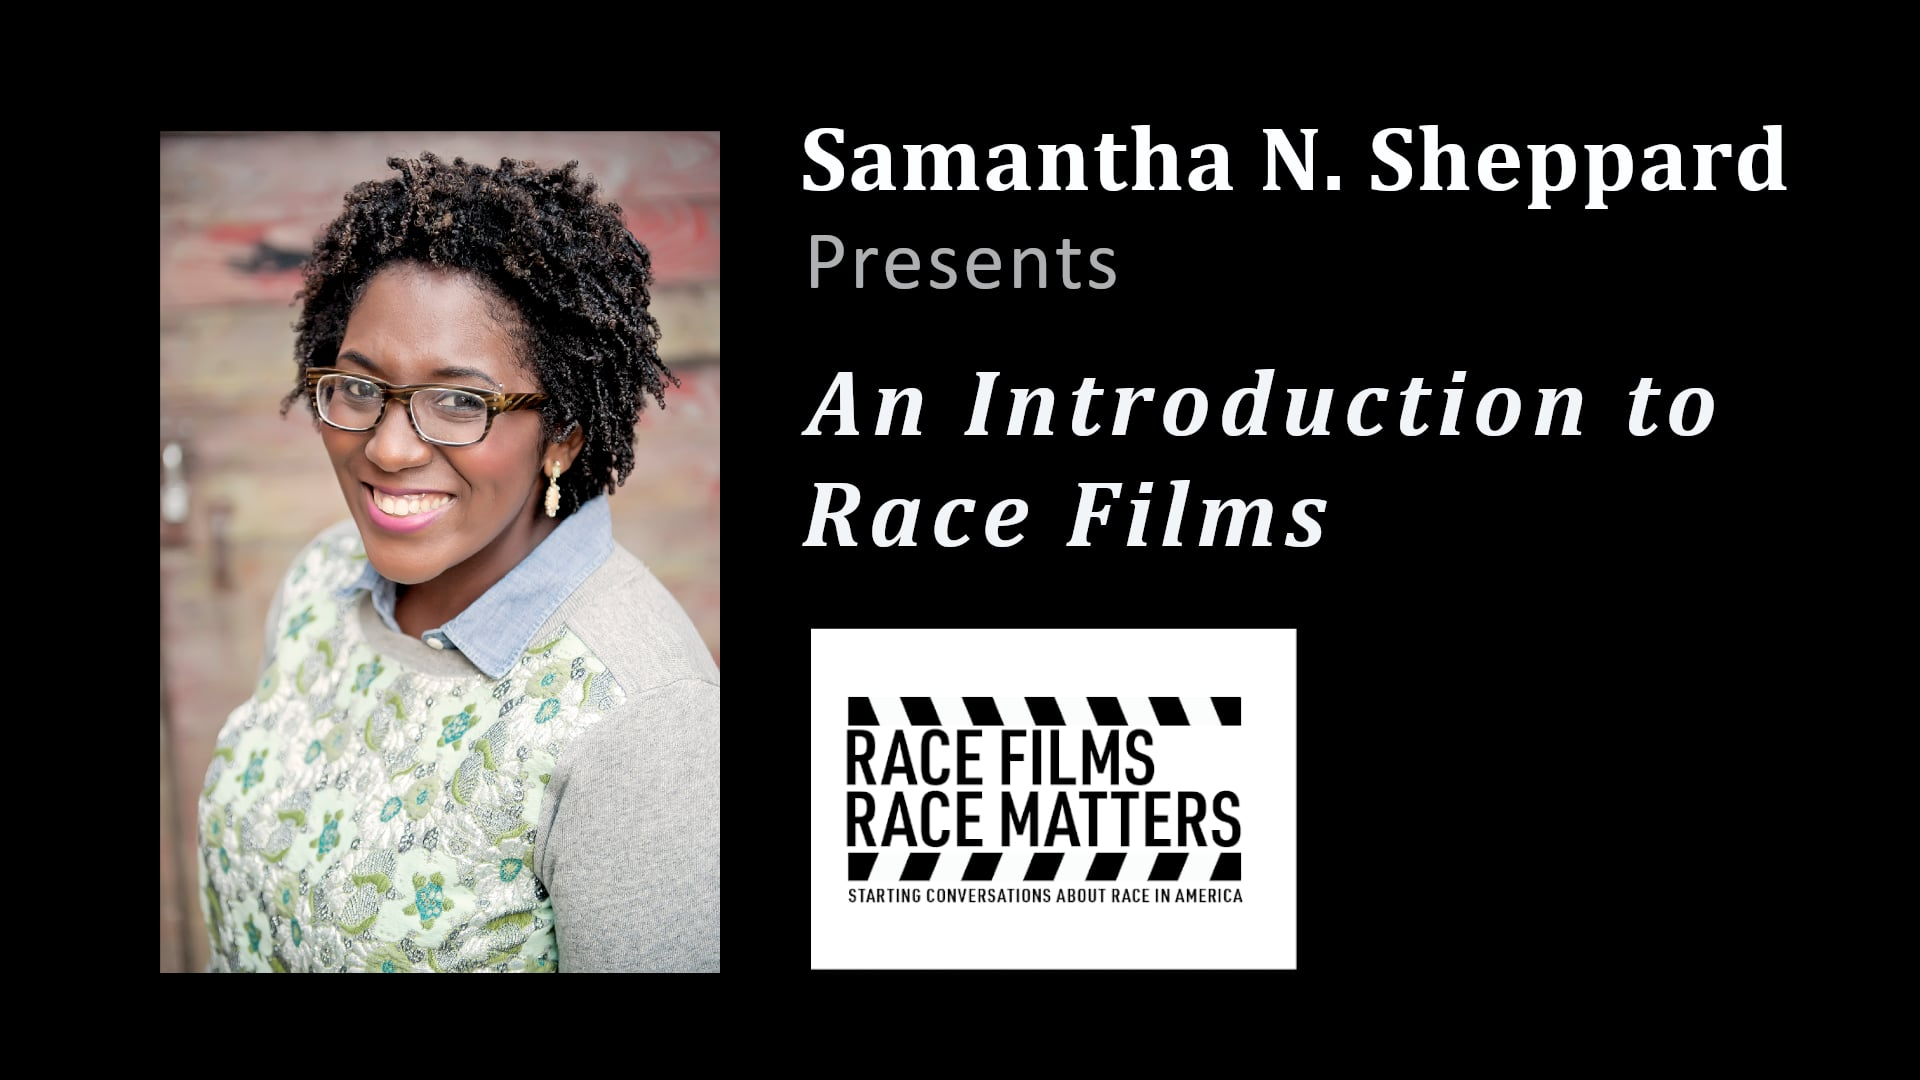 Samantha Sheppard - An Introduction to Race Films